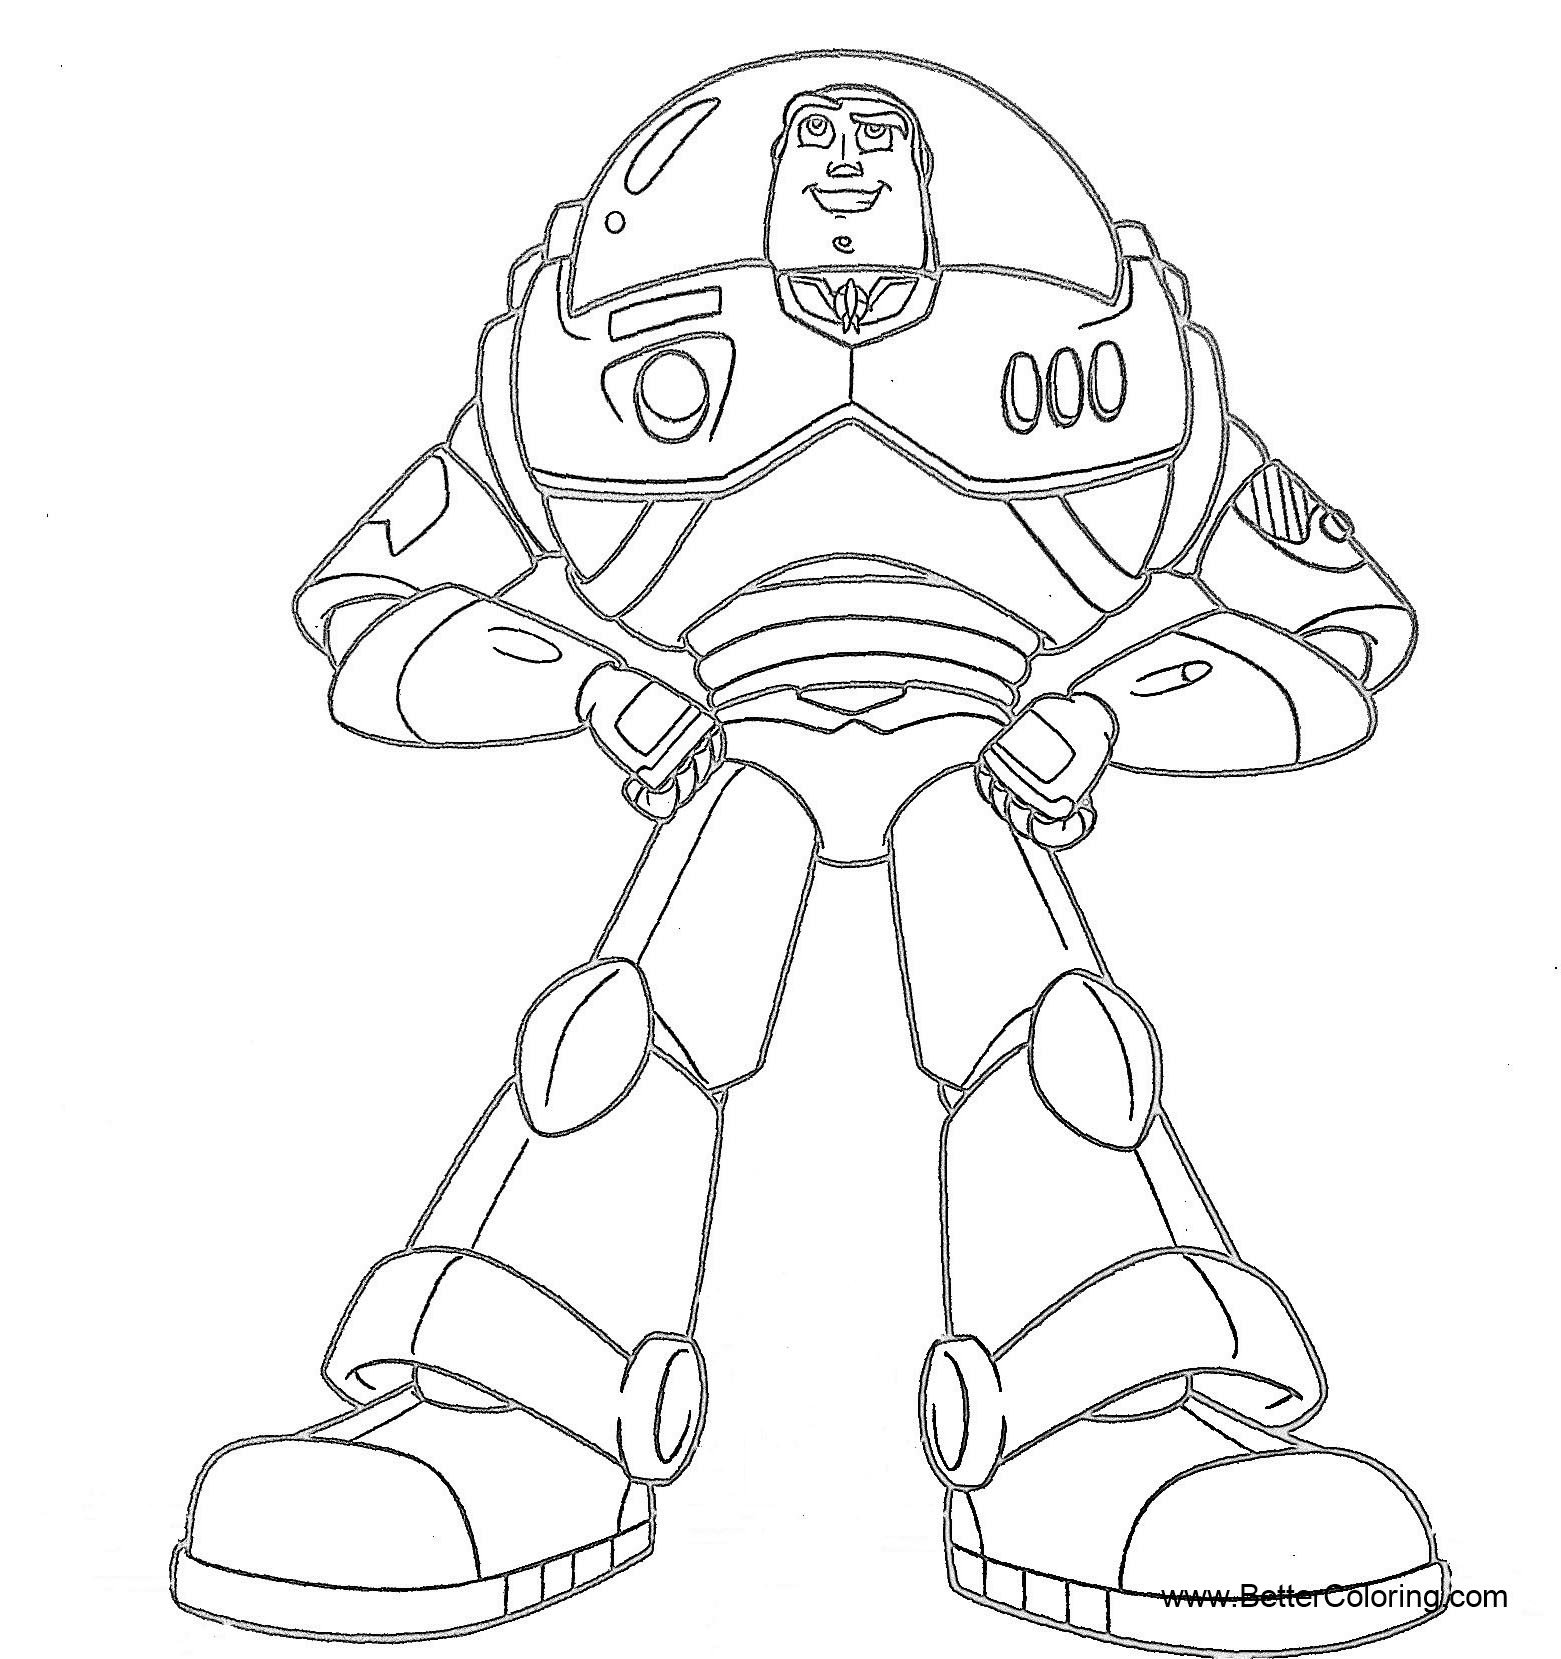 Free Buzz Lightyear Coloring Pages Simple Drawing printable